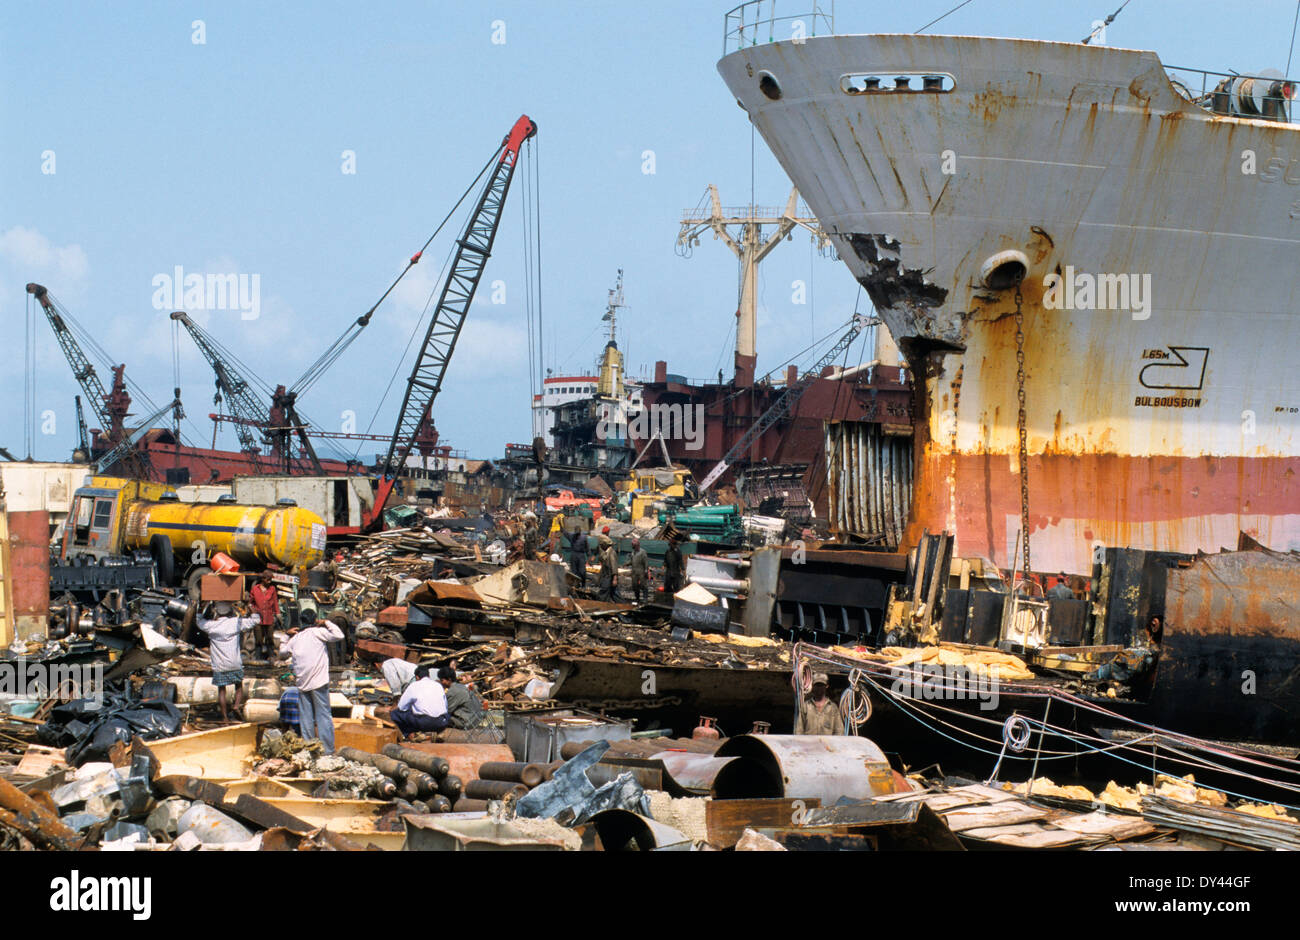 Ship Recycling India Stock Photos & Ship Recycling India Stock